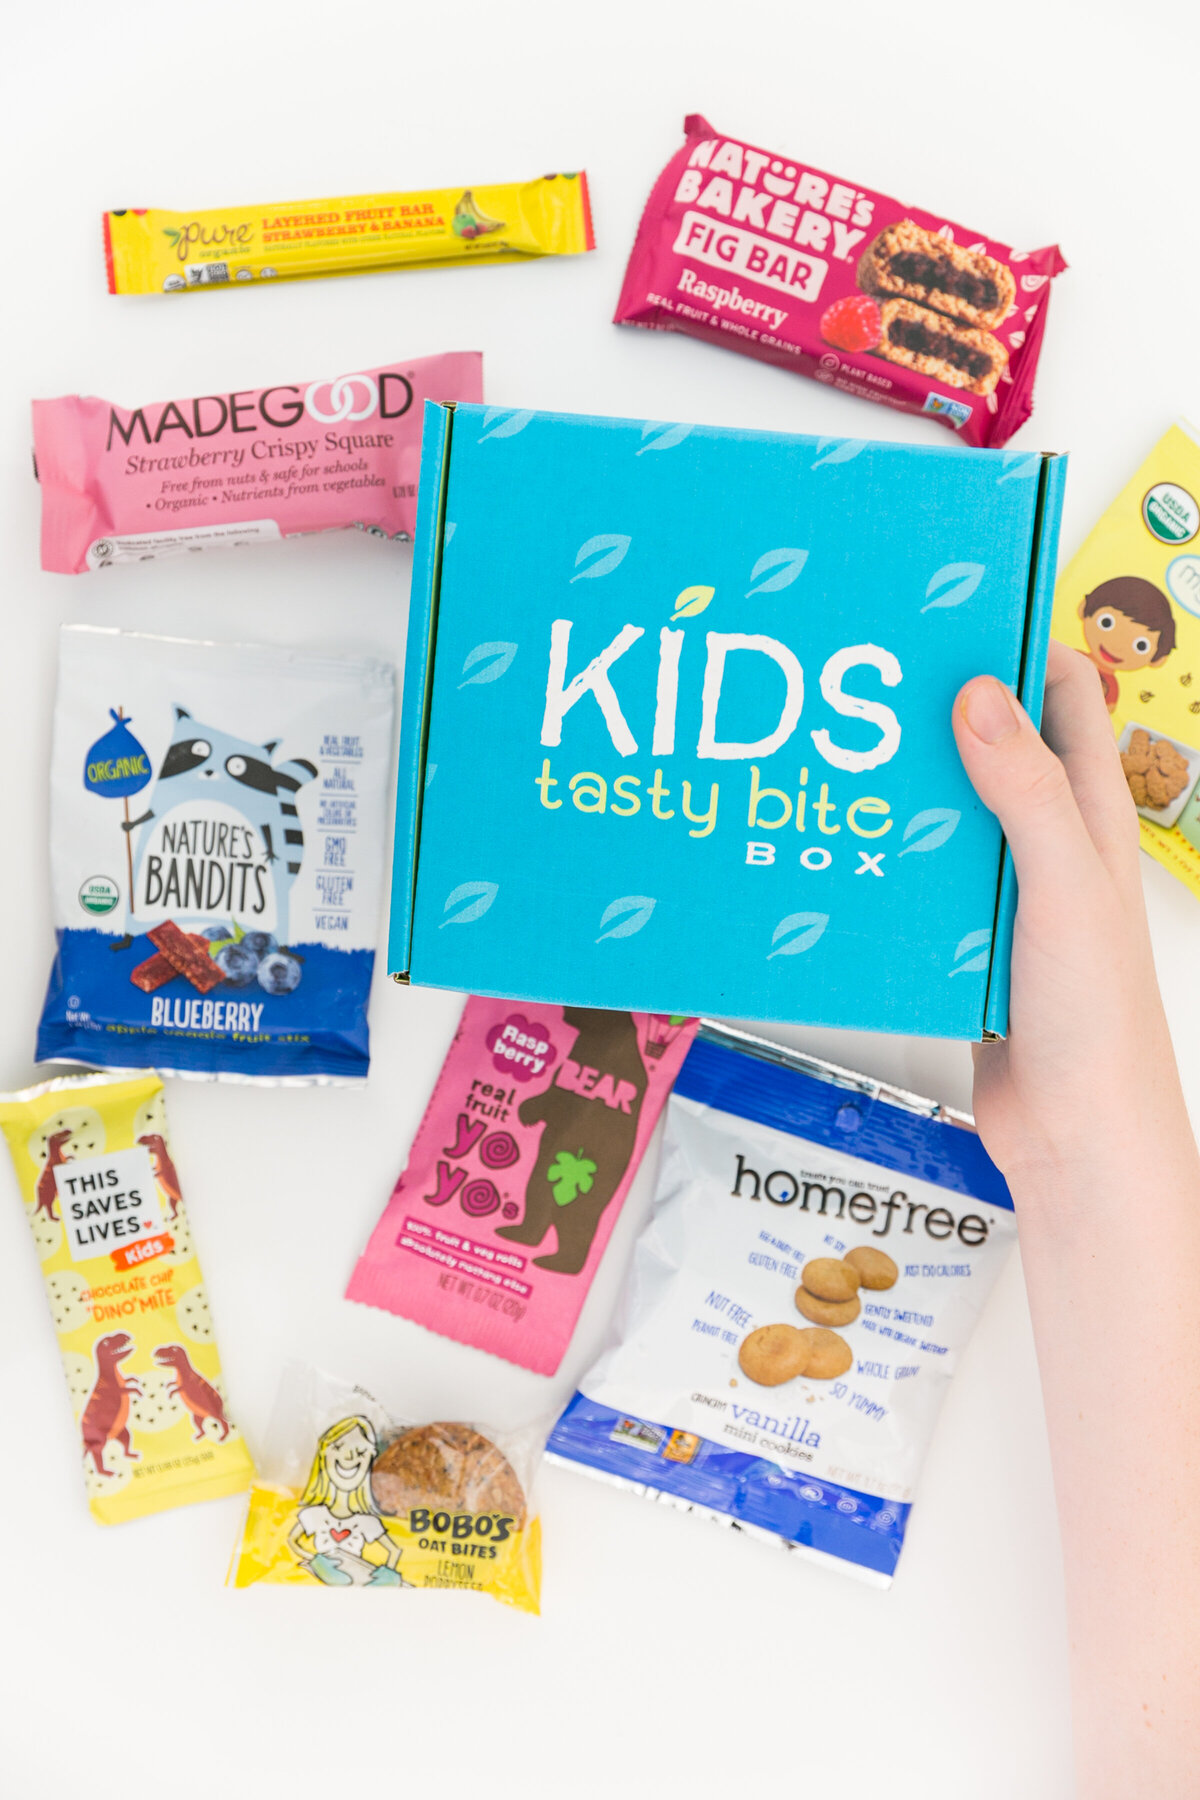 Kids tasty box images-34